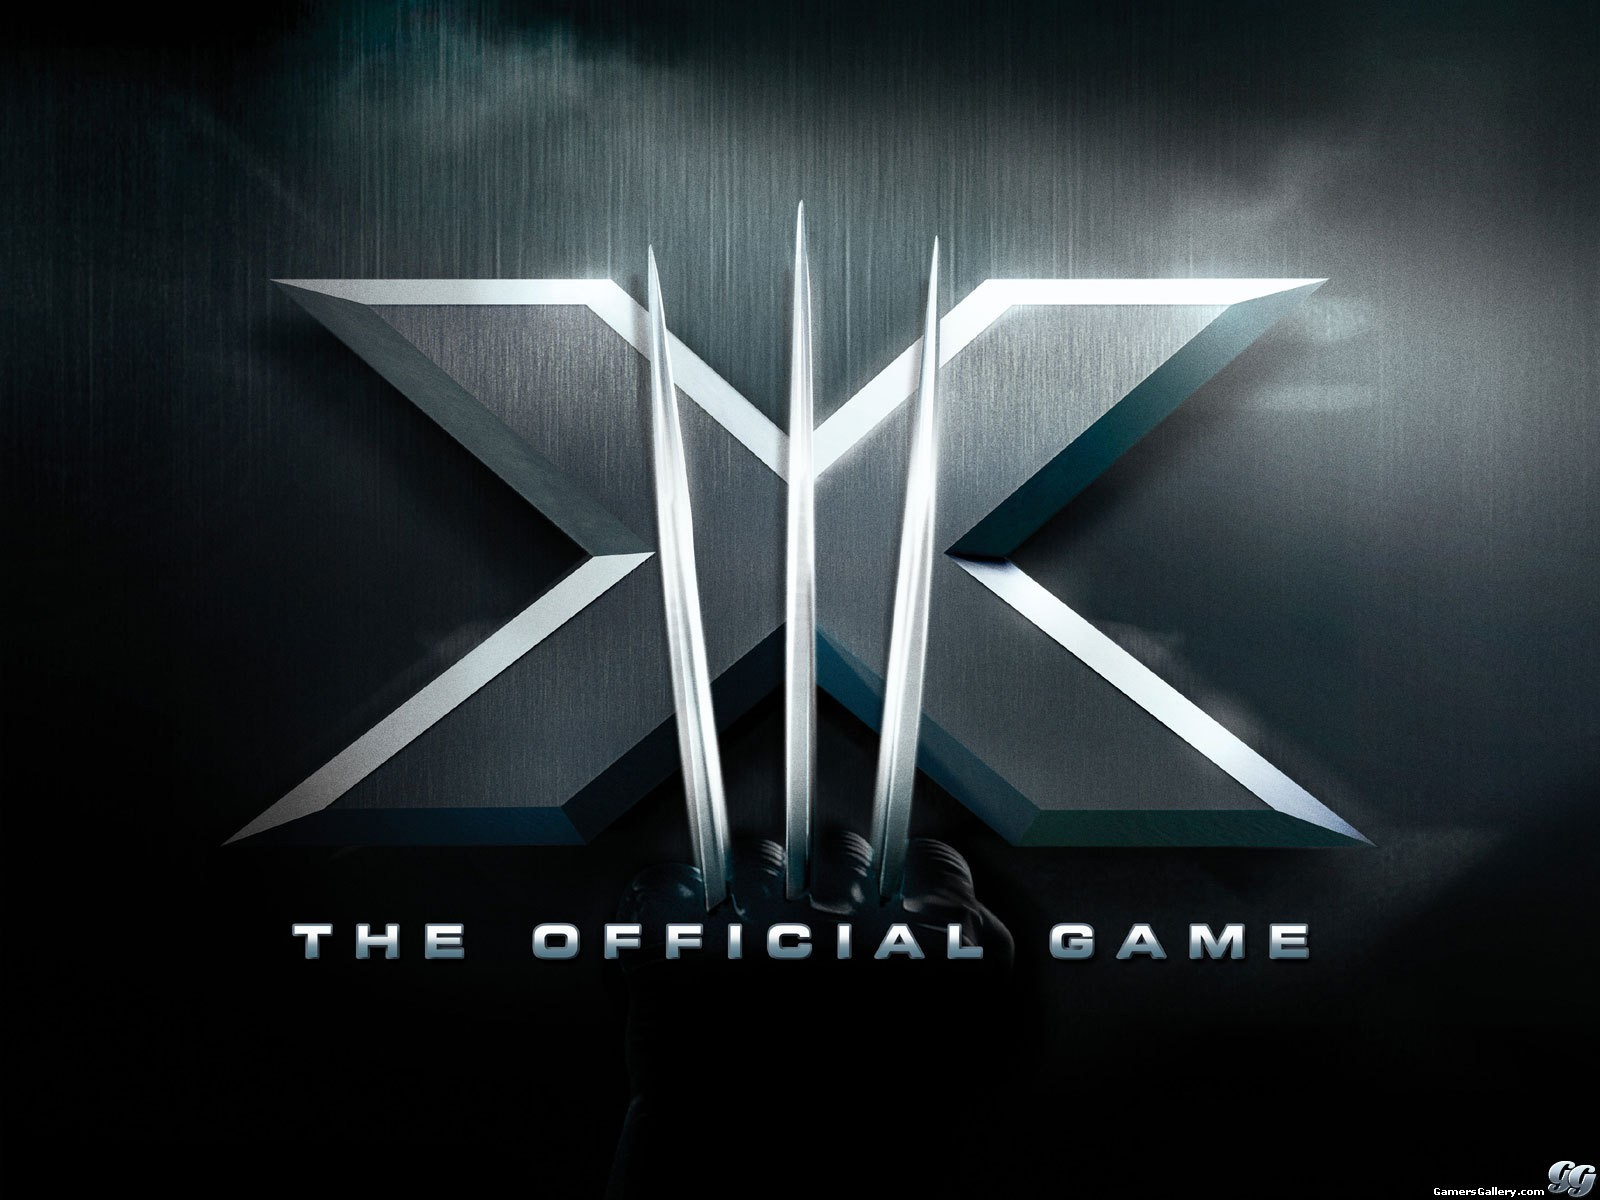 X Men The Official Game Wallpapers Video Game Hq X Men The Official Game Pictures 4k Wallpapers 2019